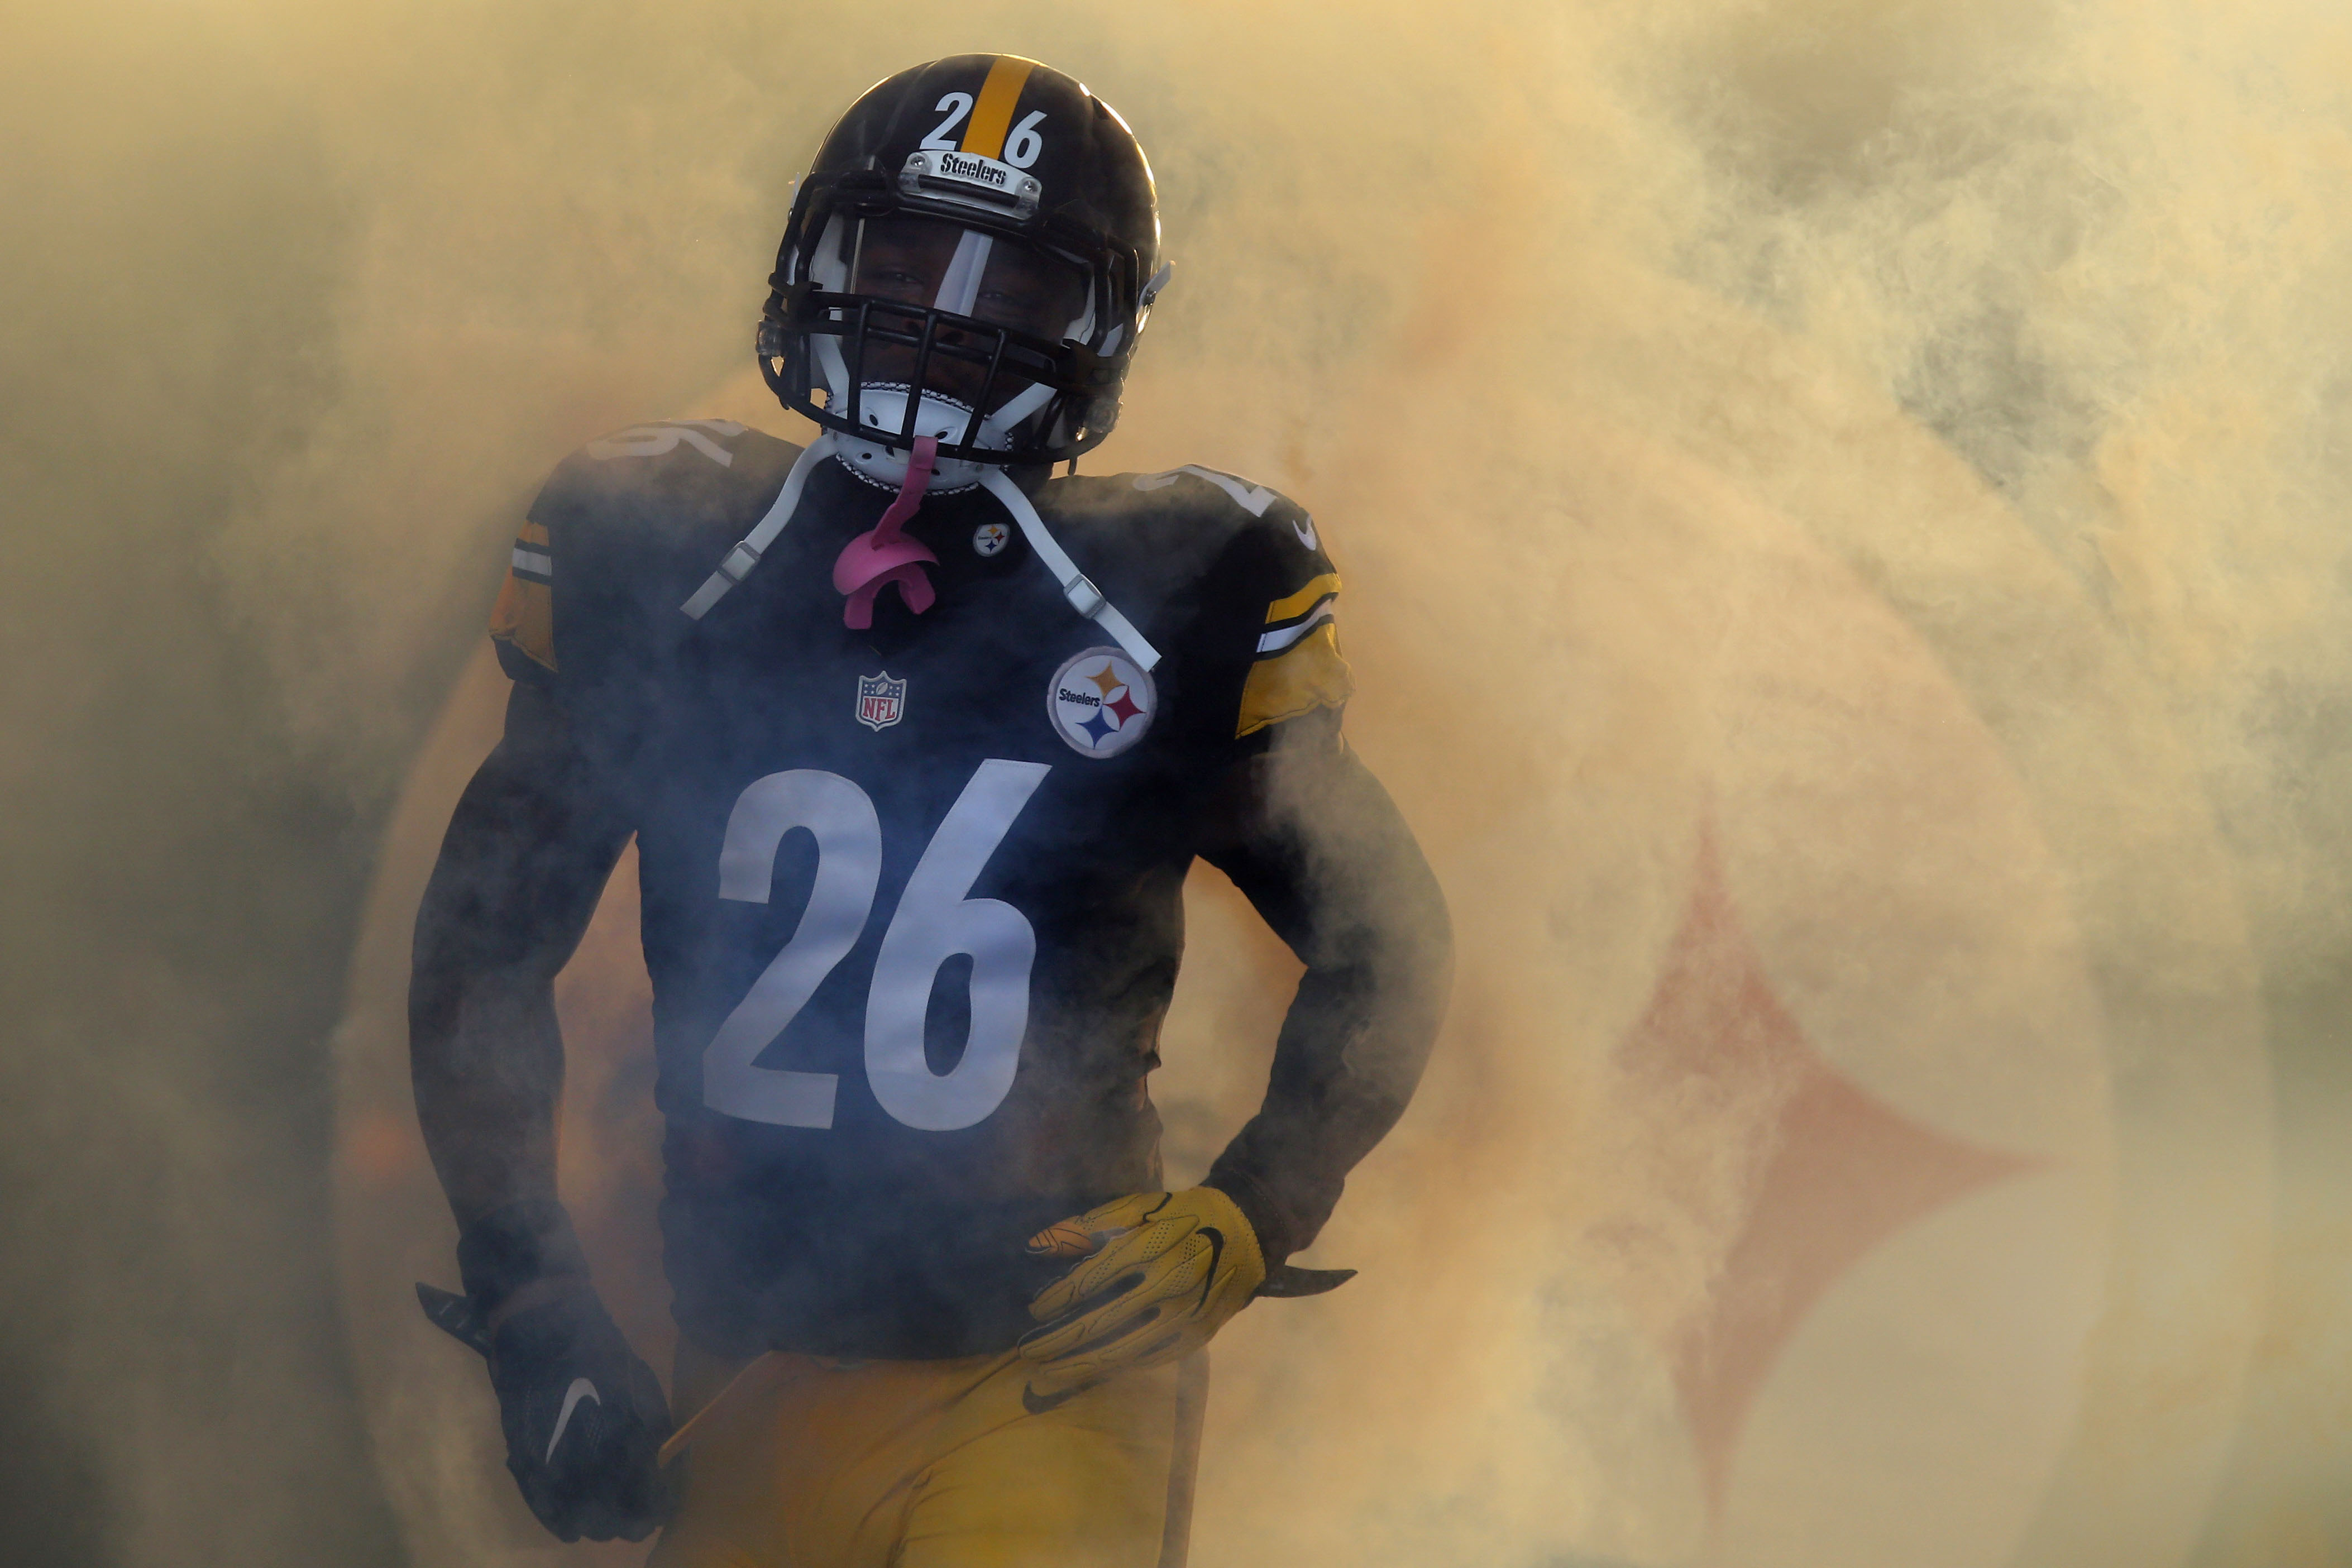 9805374-nfl-afc-wild-card-miami-dolphins-at-pittsburgh-steelers